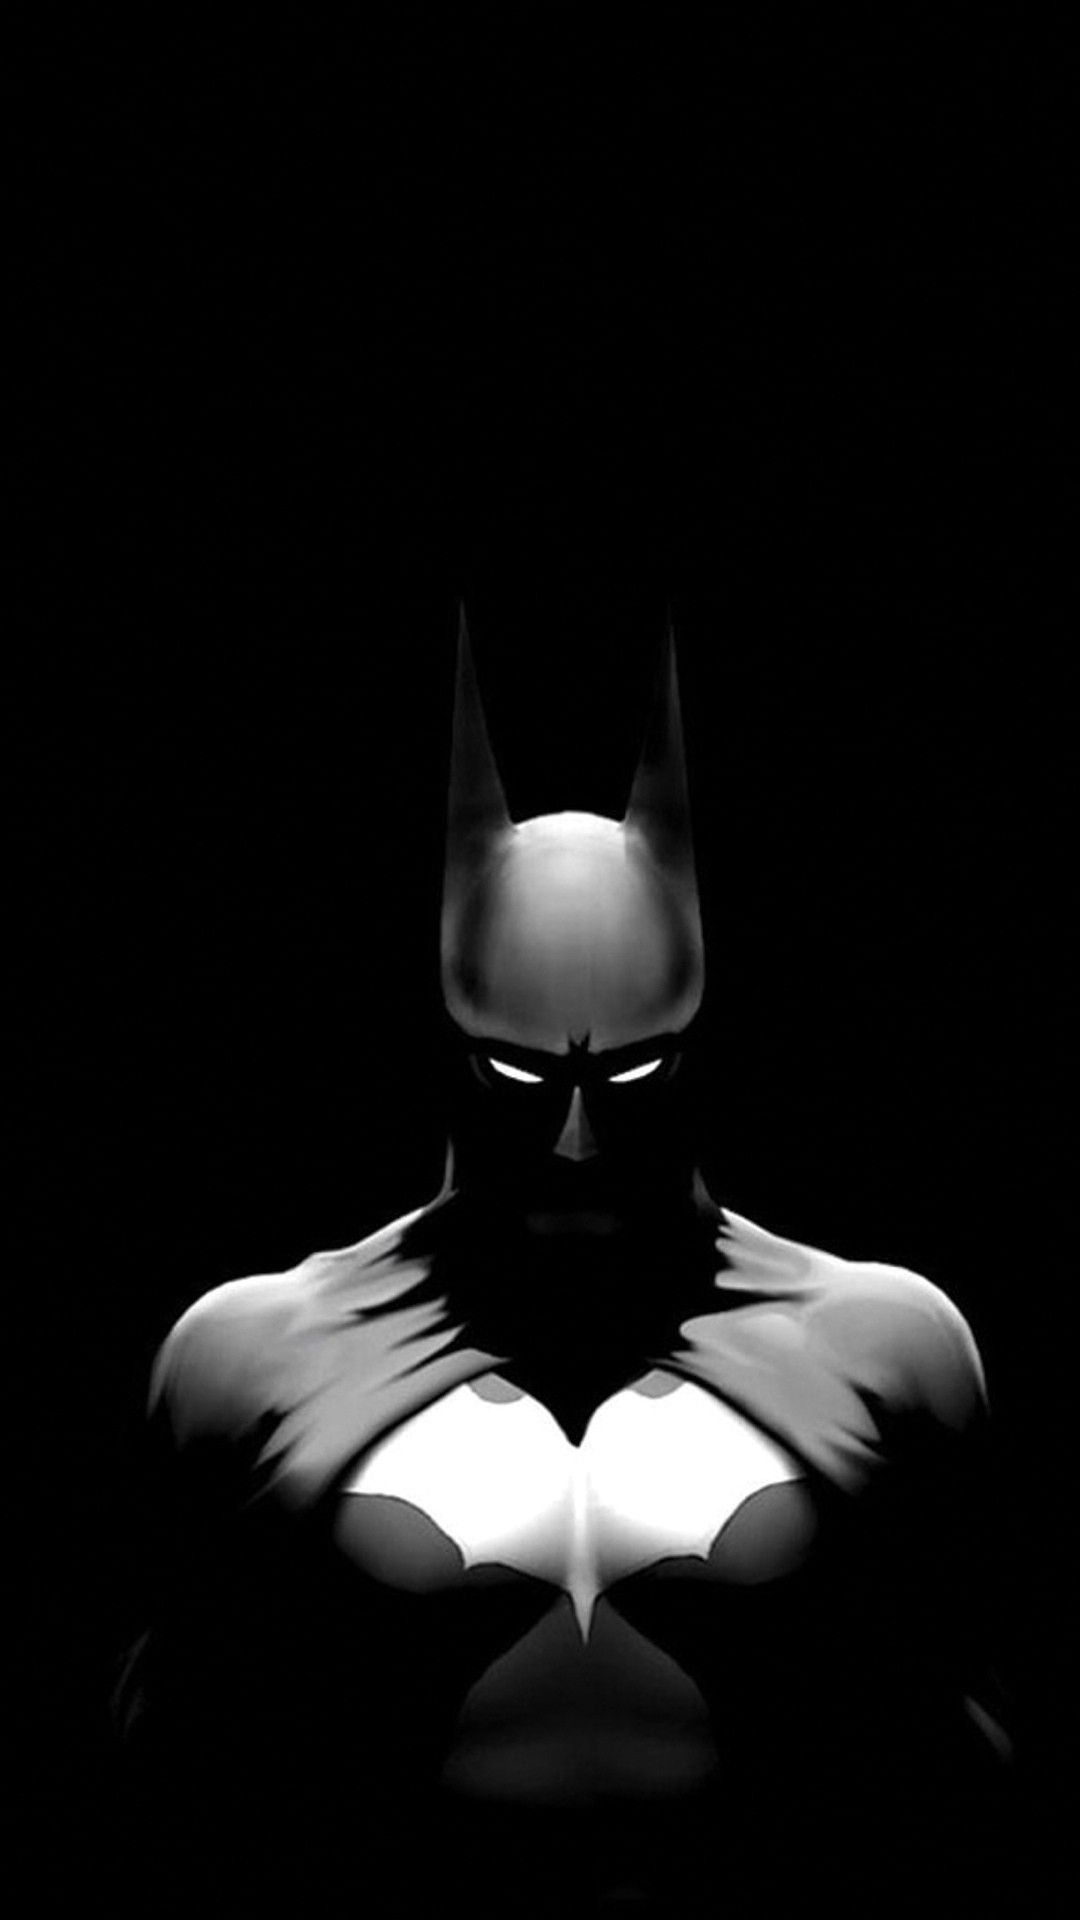 ☺fonddecraniphone7hd19 Fond d'écran iphone batman